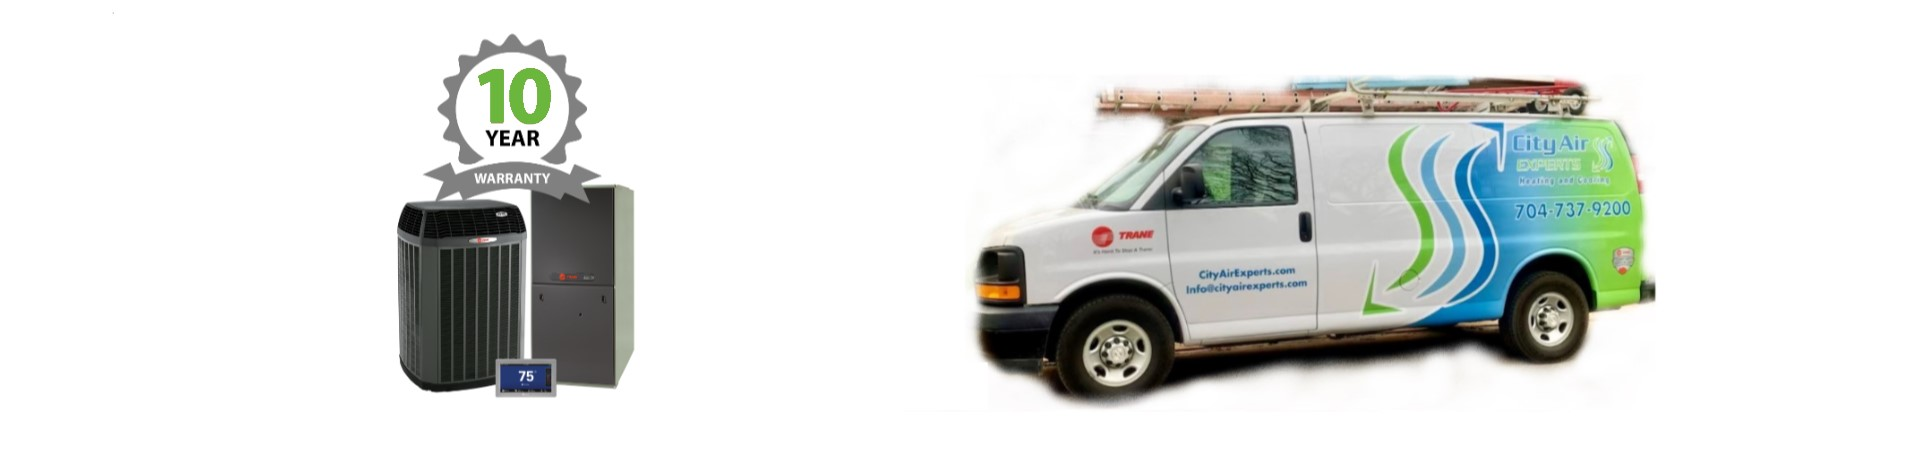 <p>City Air Experts serves Charlotte and the surrounding areas. Call us for a free estimate to replace your unit. Thank you for your business.</p>